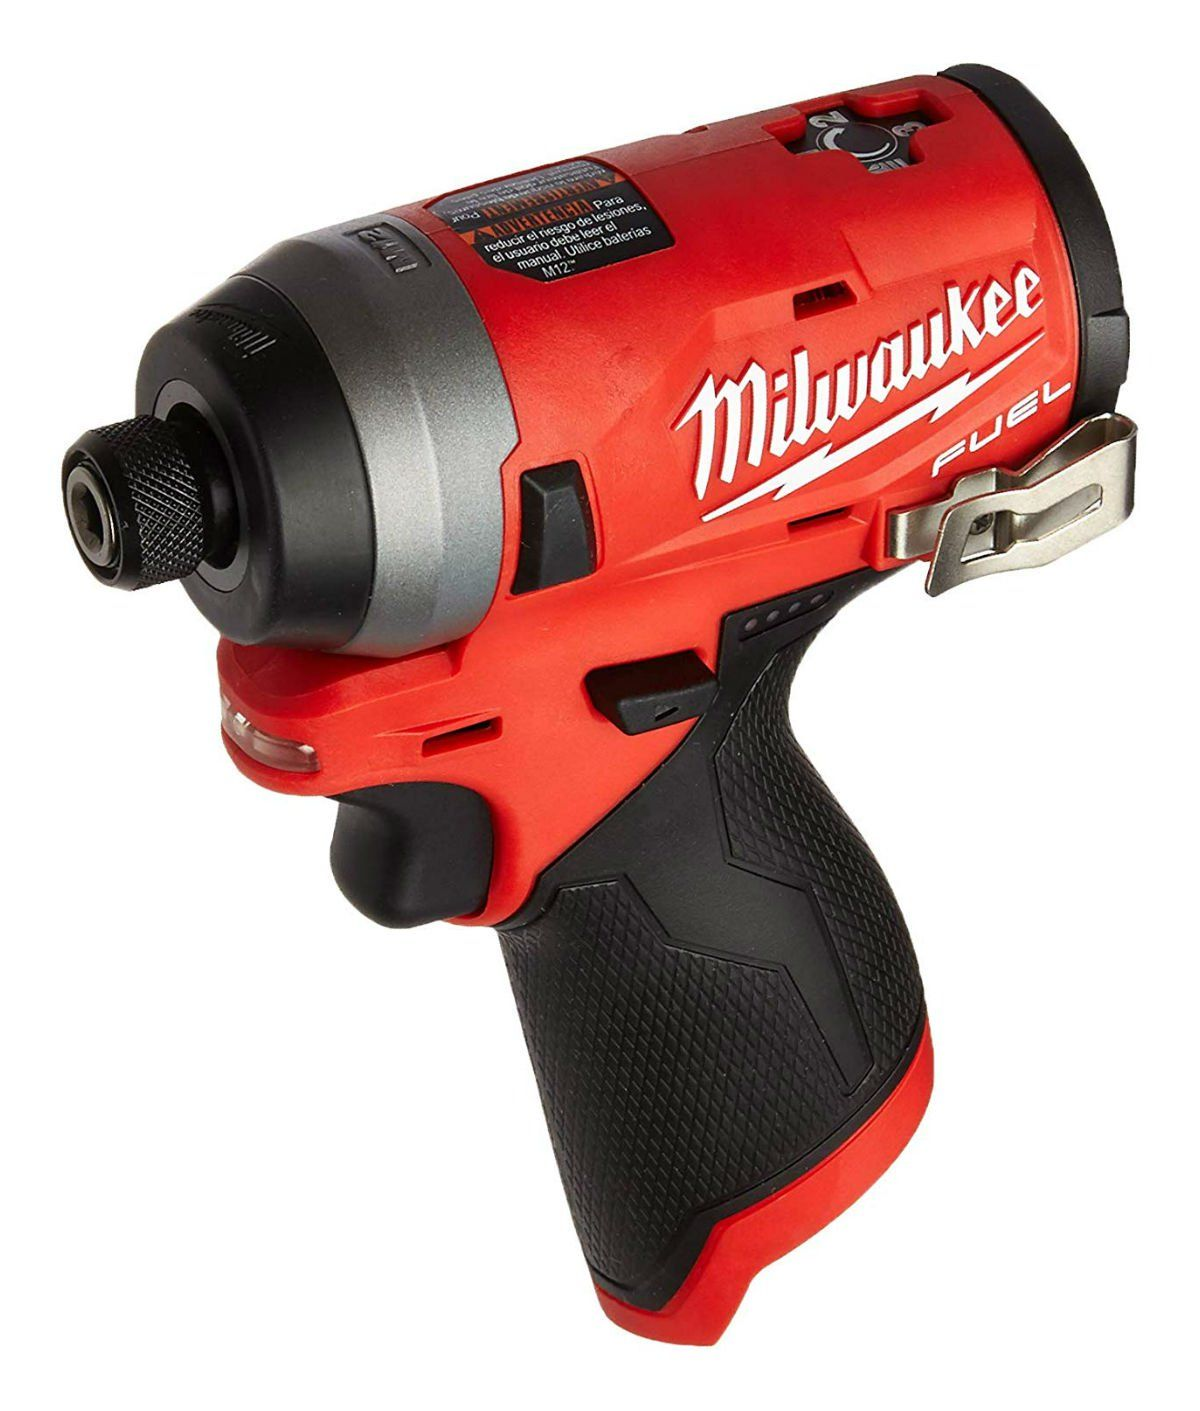 Best Impact Driver Shopping Tips 5 Recommendations Tools Impact Driver Milwaukee Tools